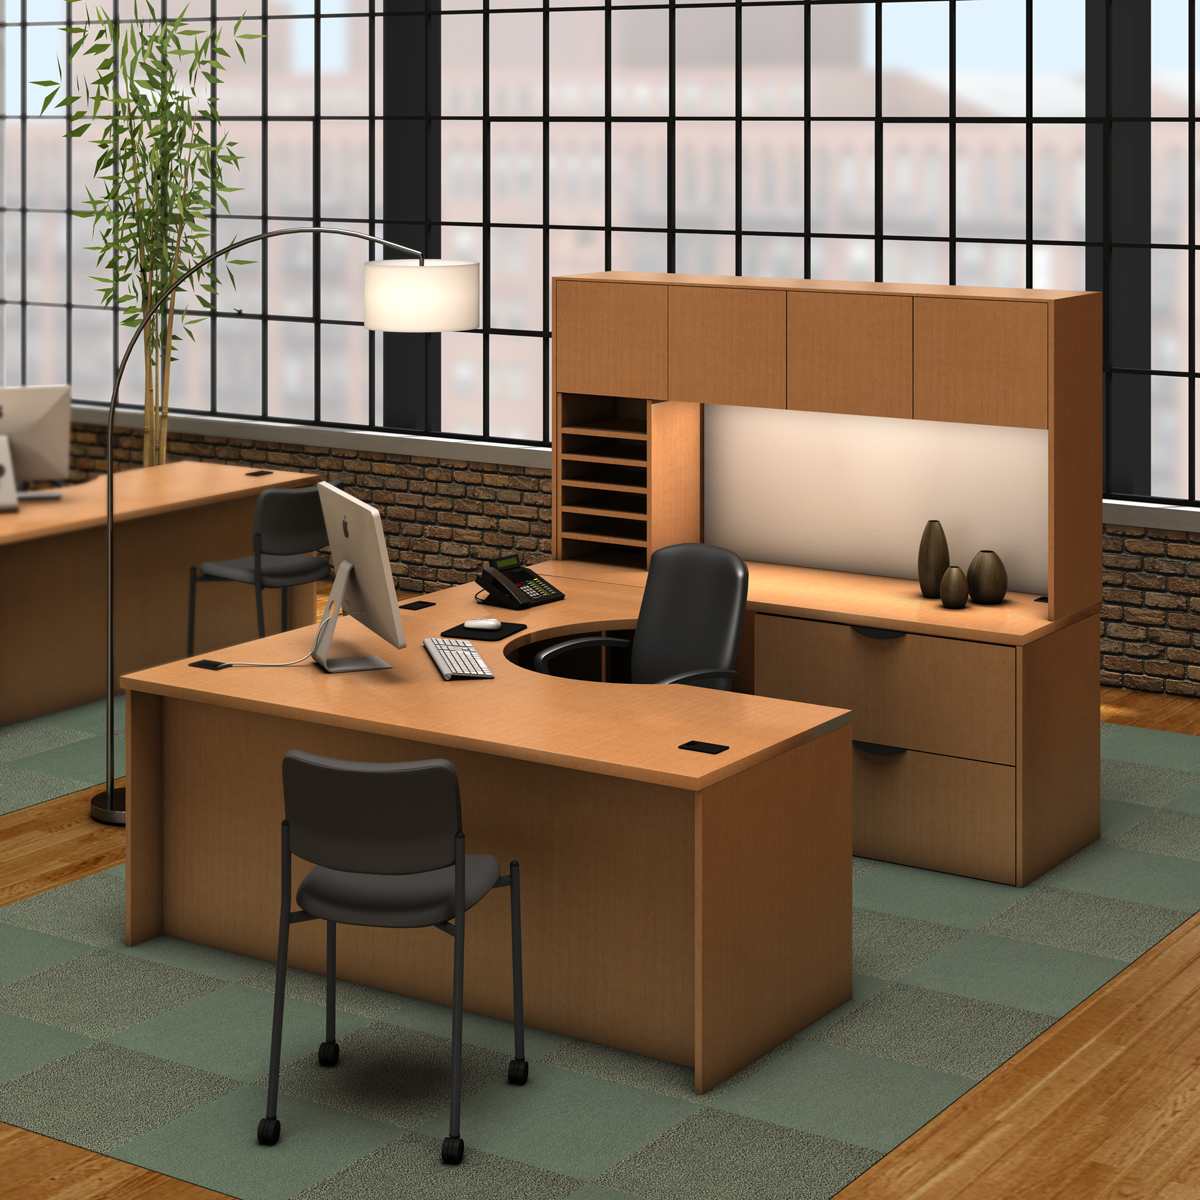 office furniture pics. Office Furniture Pics